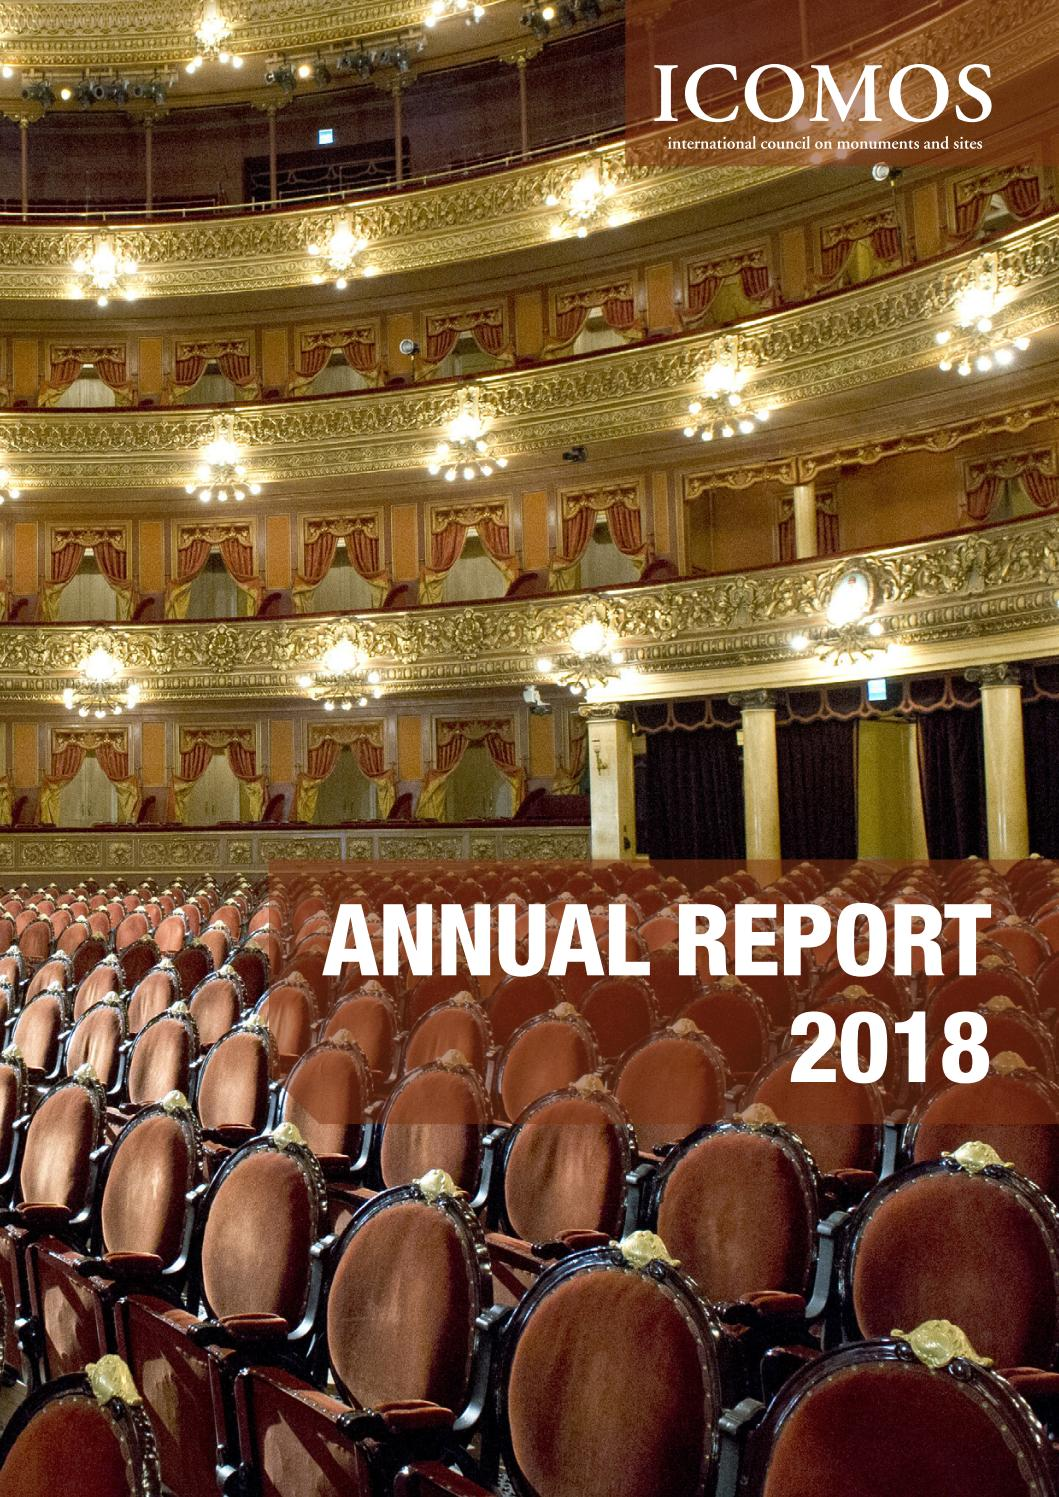 2018 ICOMOS Annual Report by ICOMOS International Council on